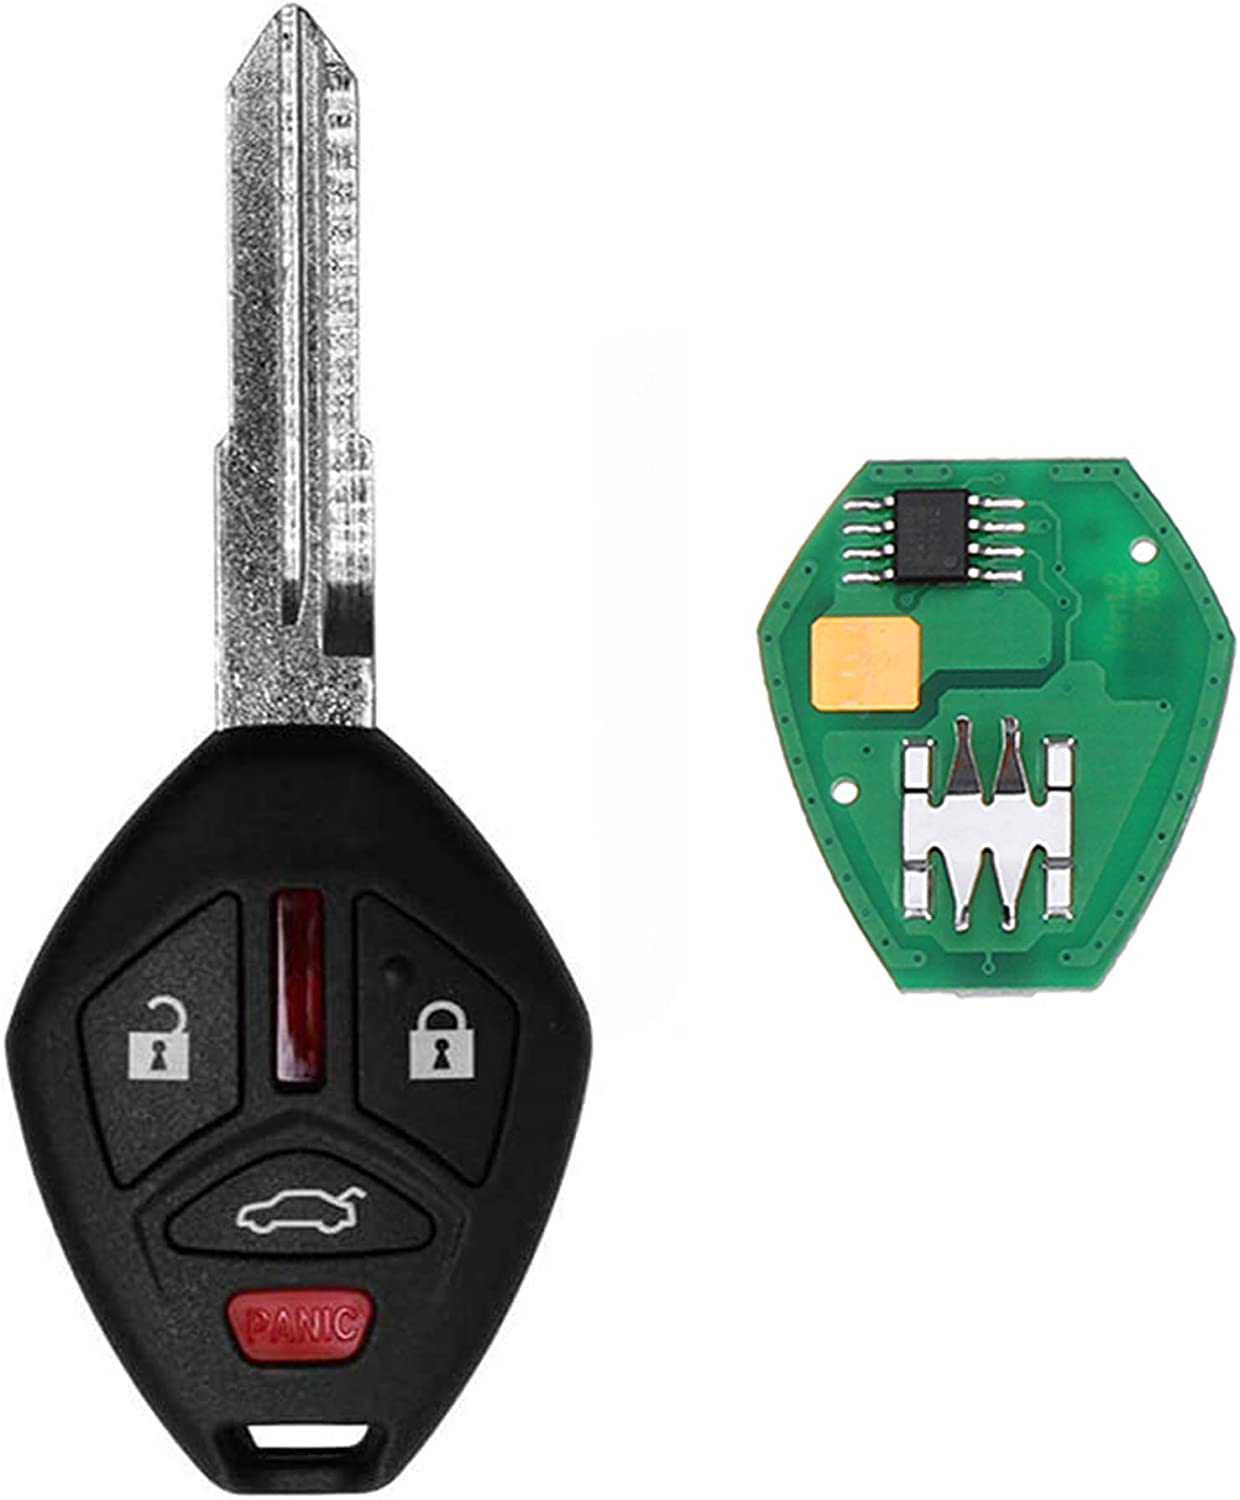 VOFONO Car Key Fob Keyless Entry Remote Fits for Mitsubishi Eclipse / Galant 2007 - 2012 FCC ID: OUCG8D620MA (Pack of 1) 4 Buttons Key fob Replacement